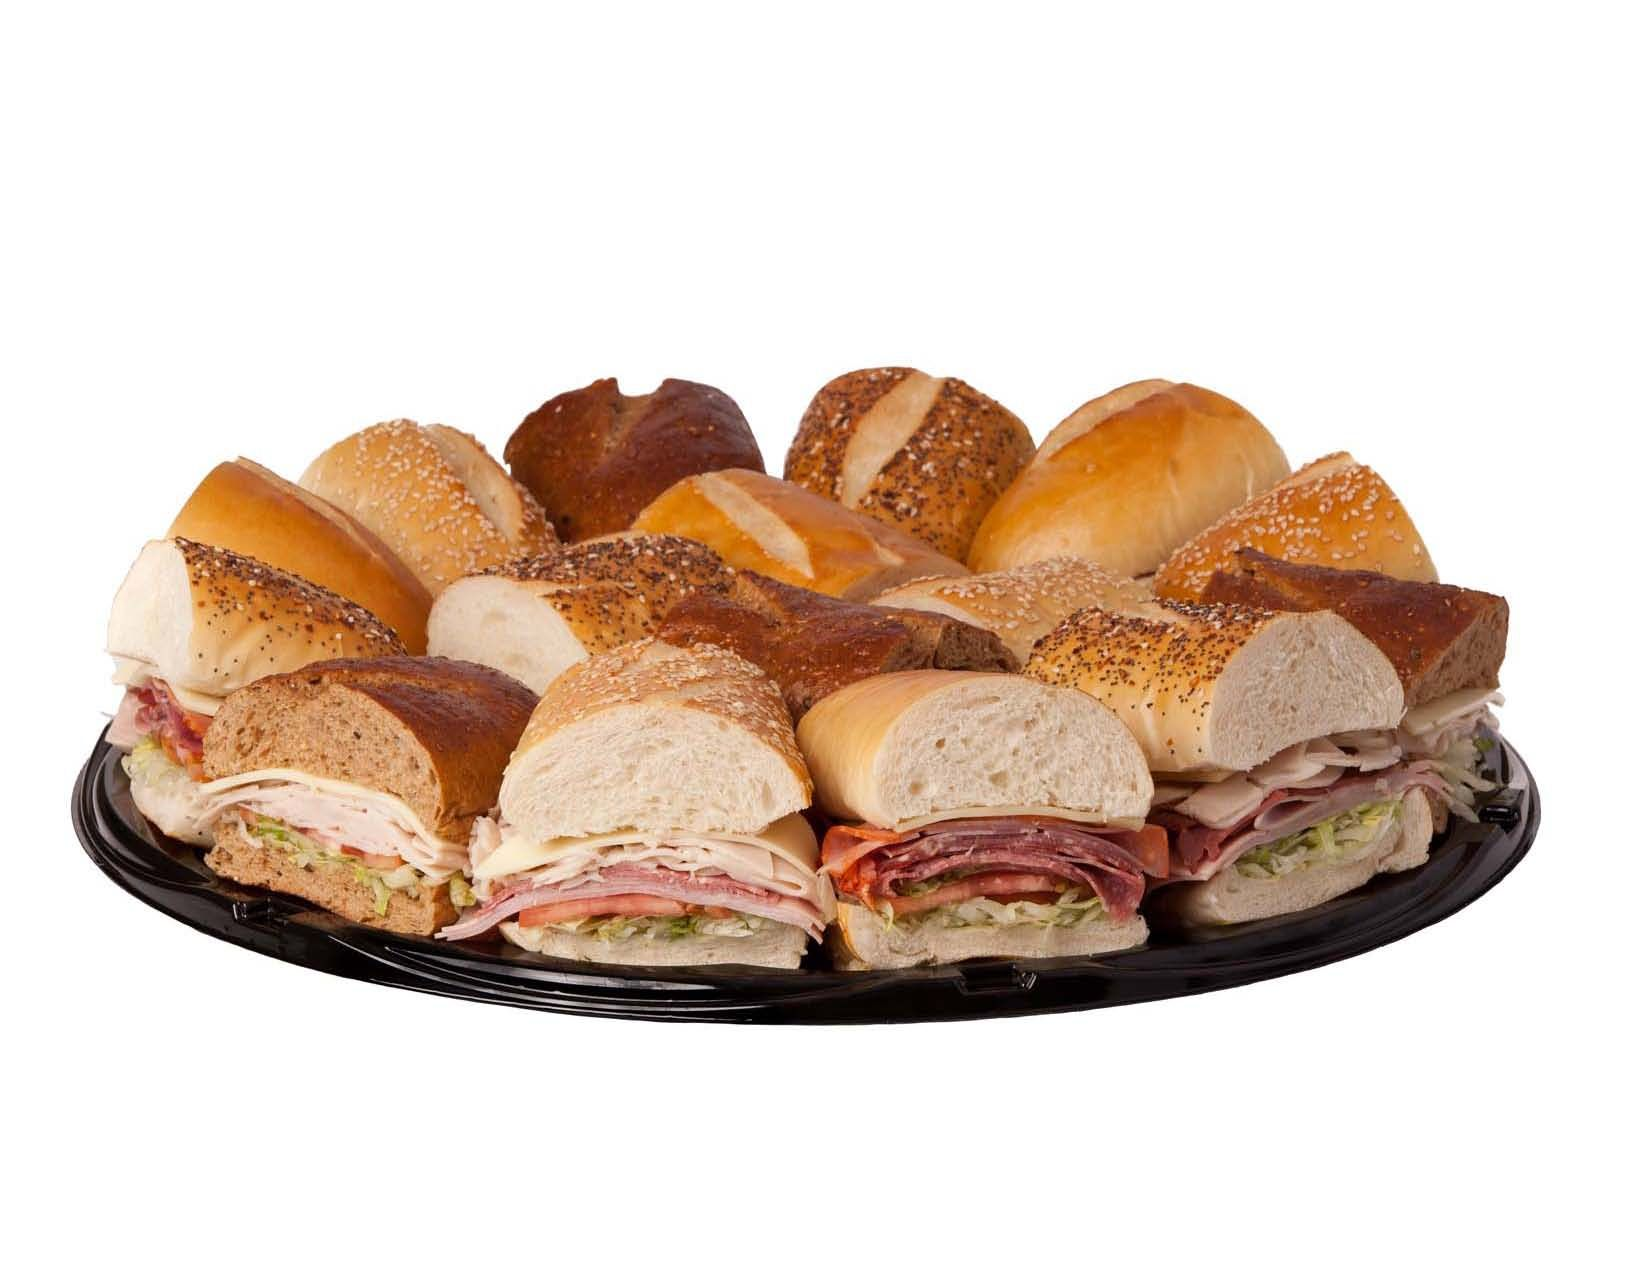 dibella s subs sub tray perfect for your party or work office dibella s subs sub tray perfect for your party or work office lunch yum catering submarines dibella s catering work lunches